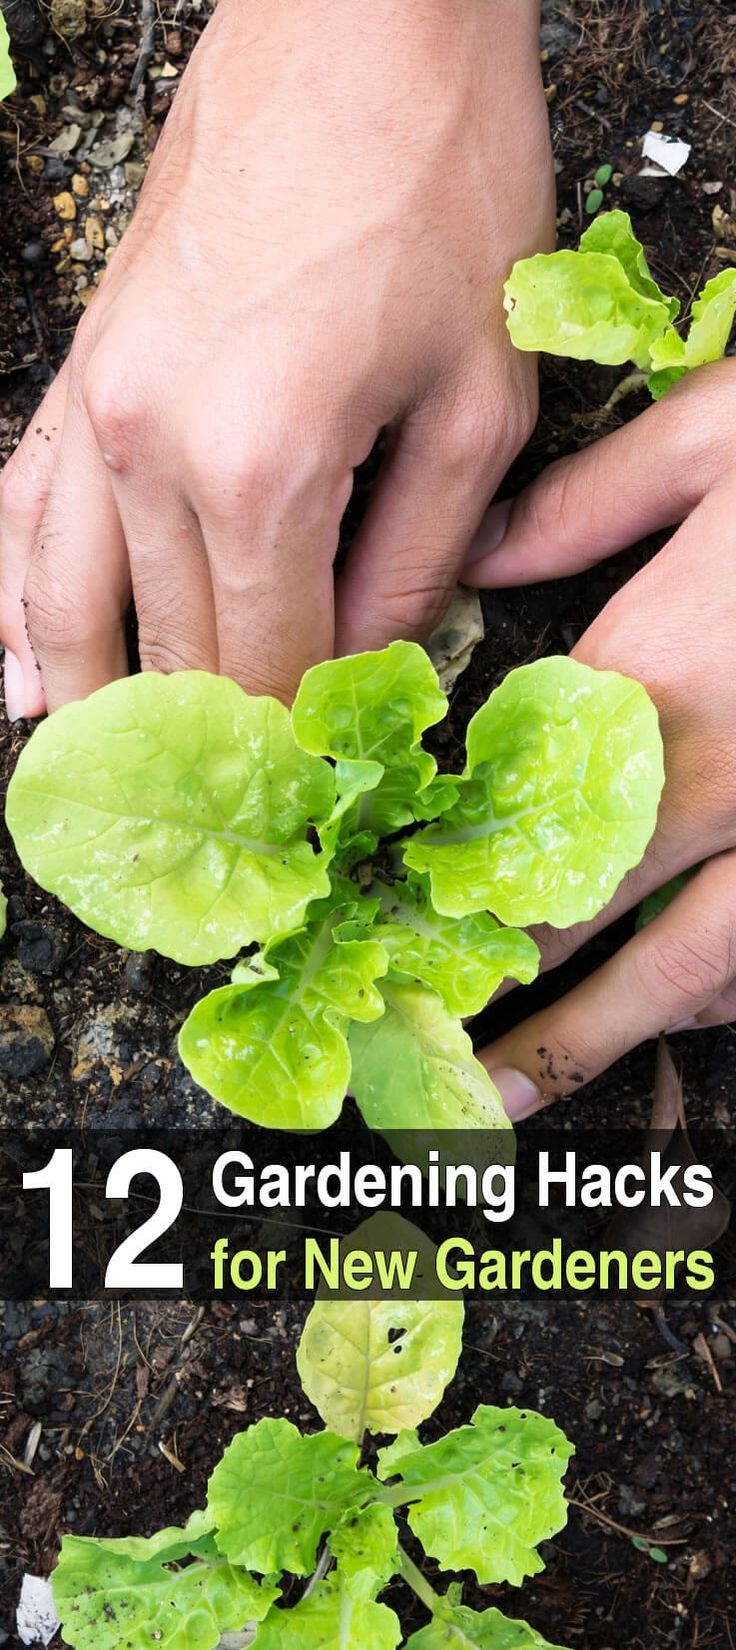 best 25 gardening hacks ideas on pinterest organic gardening tips growing vegetables and